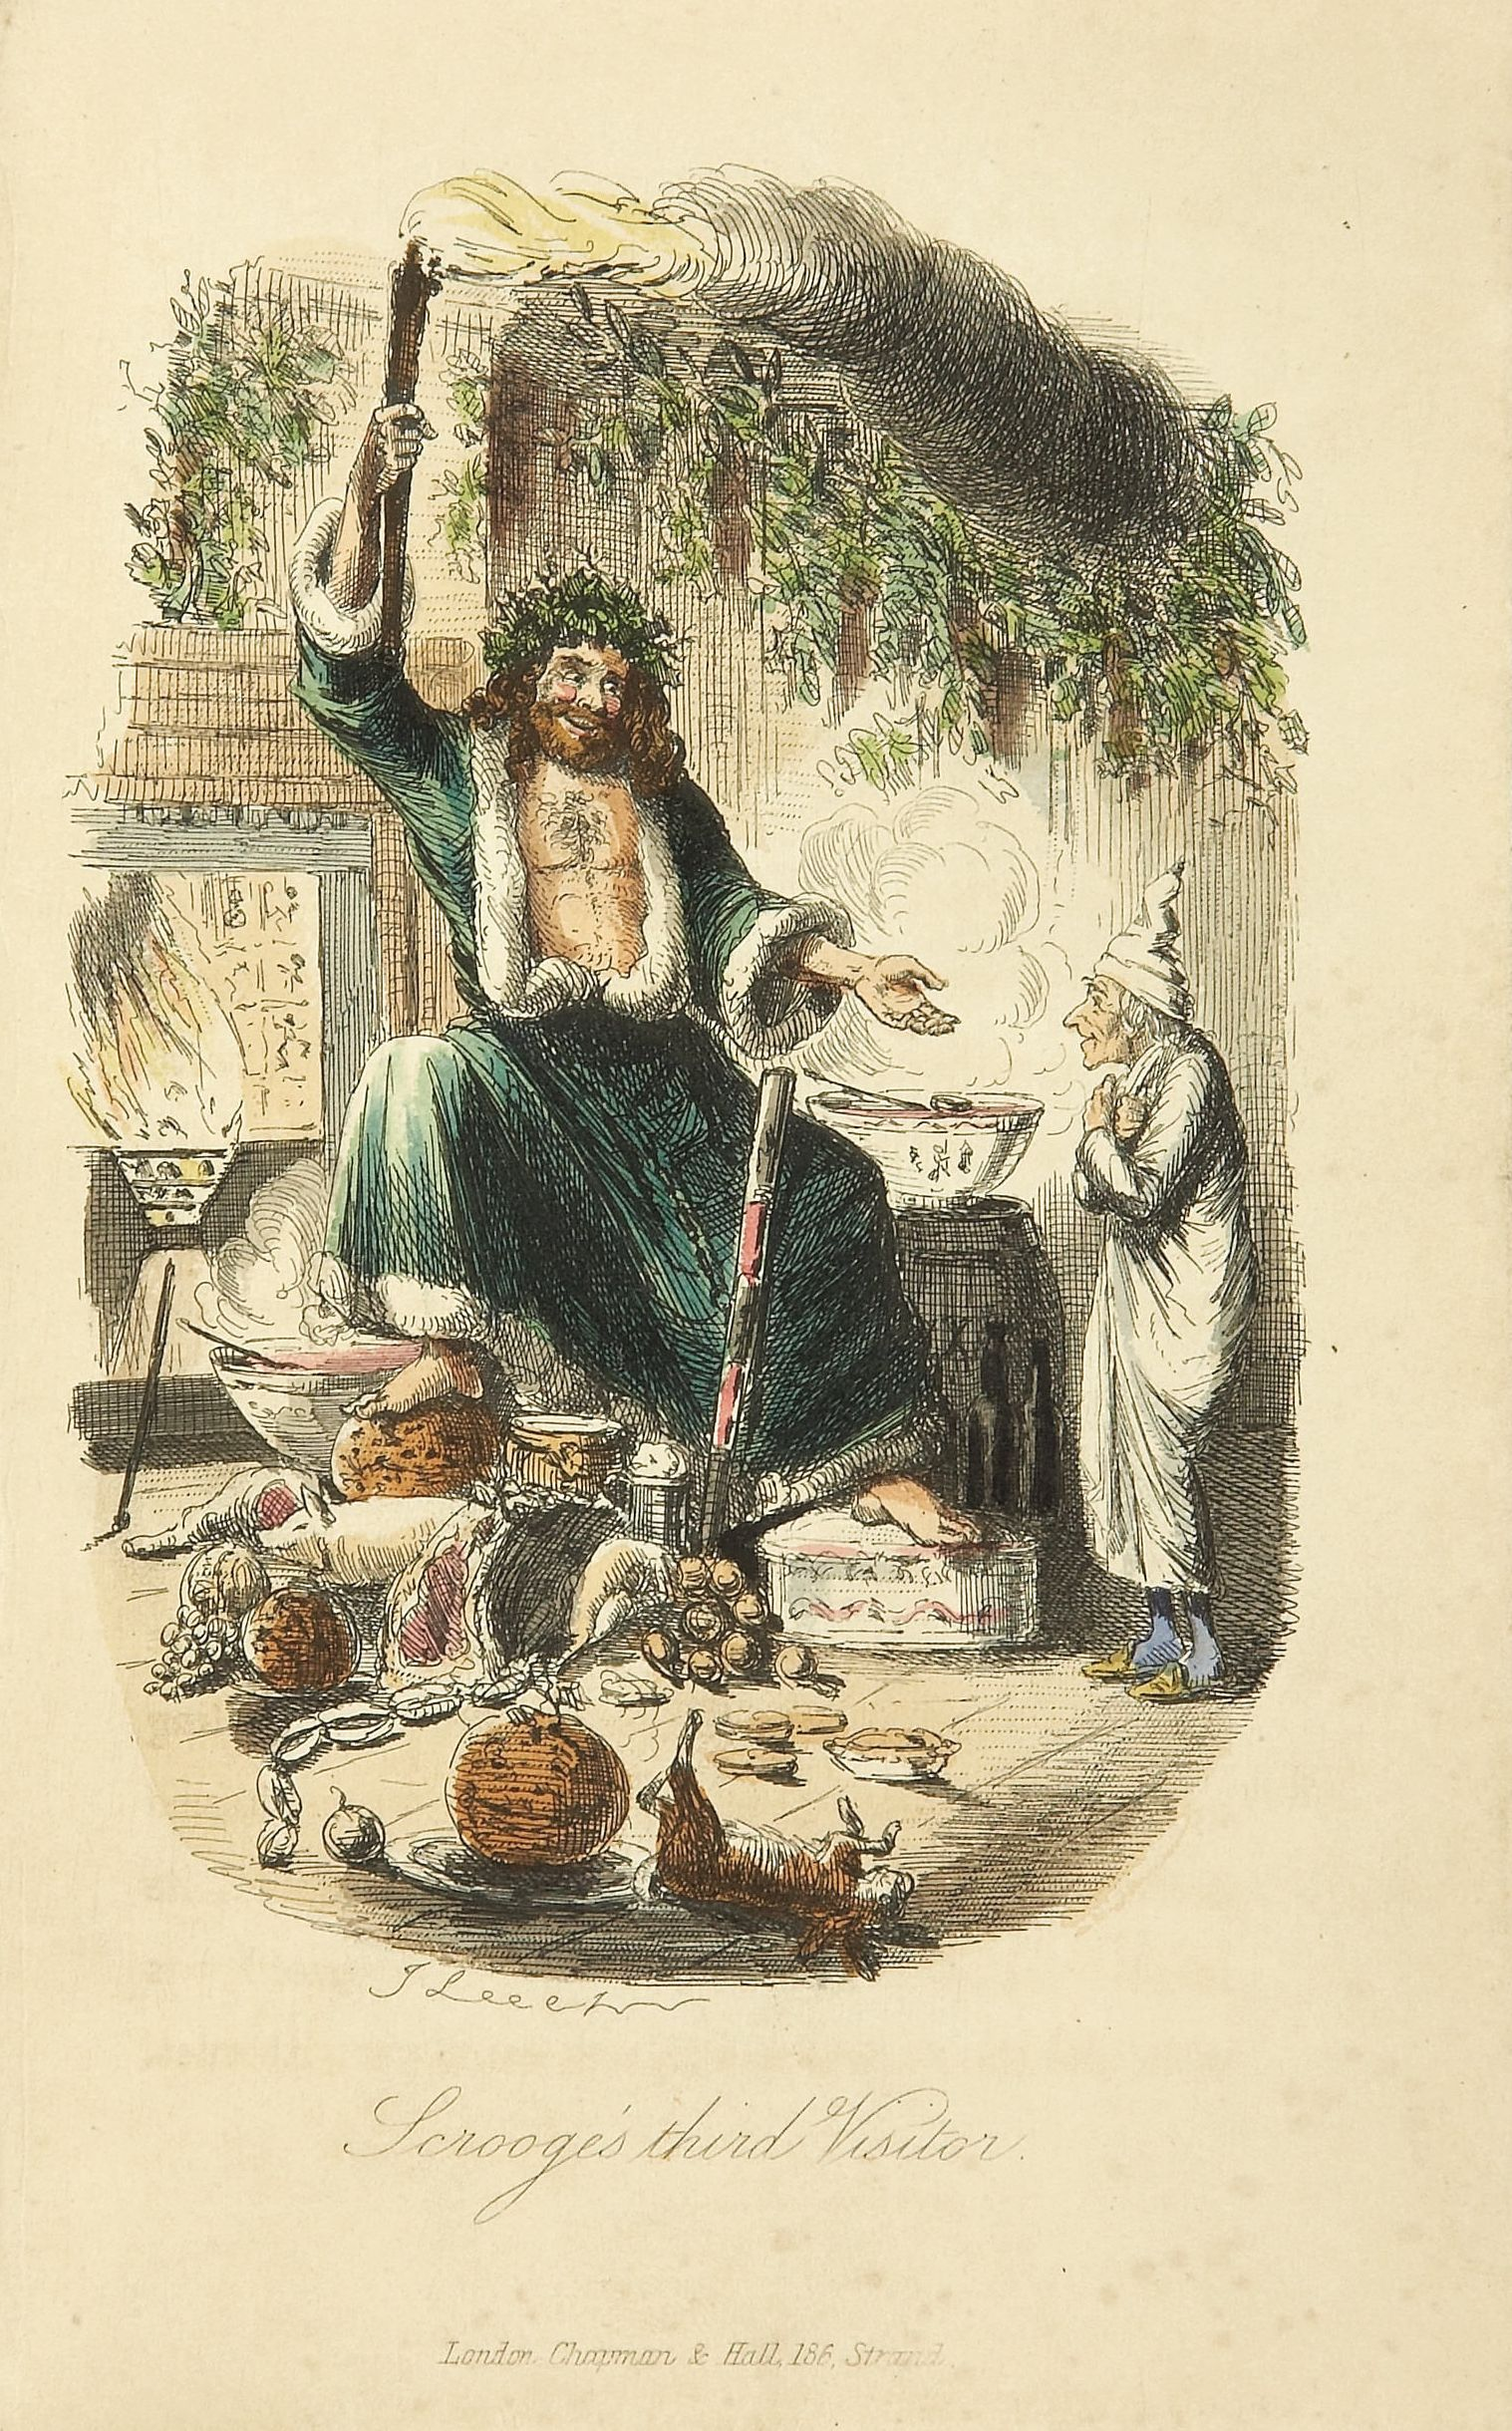 File:Scrooges third visitor-John Leech,1843.jpg - Wikimedia Commons